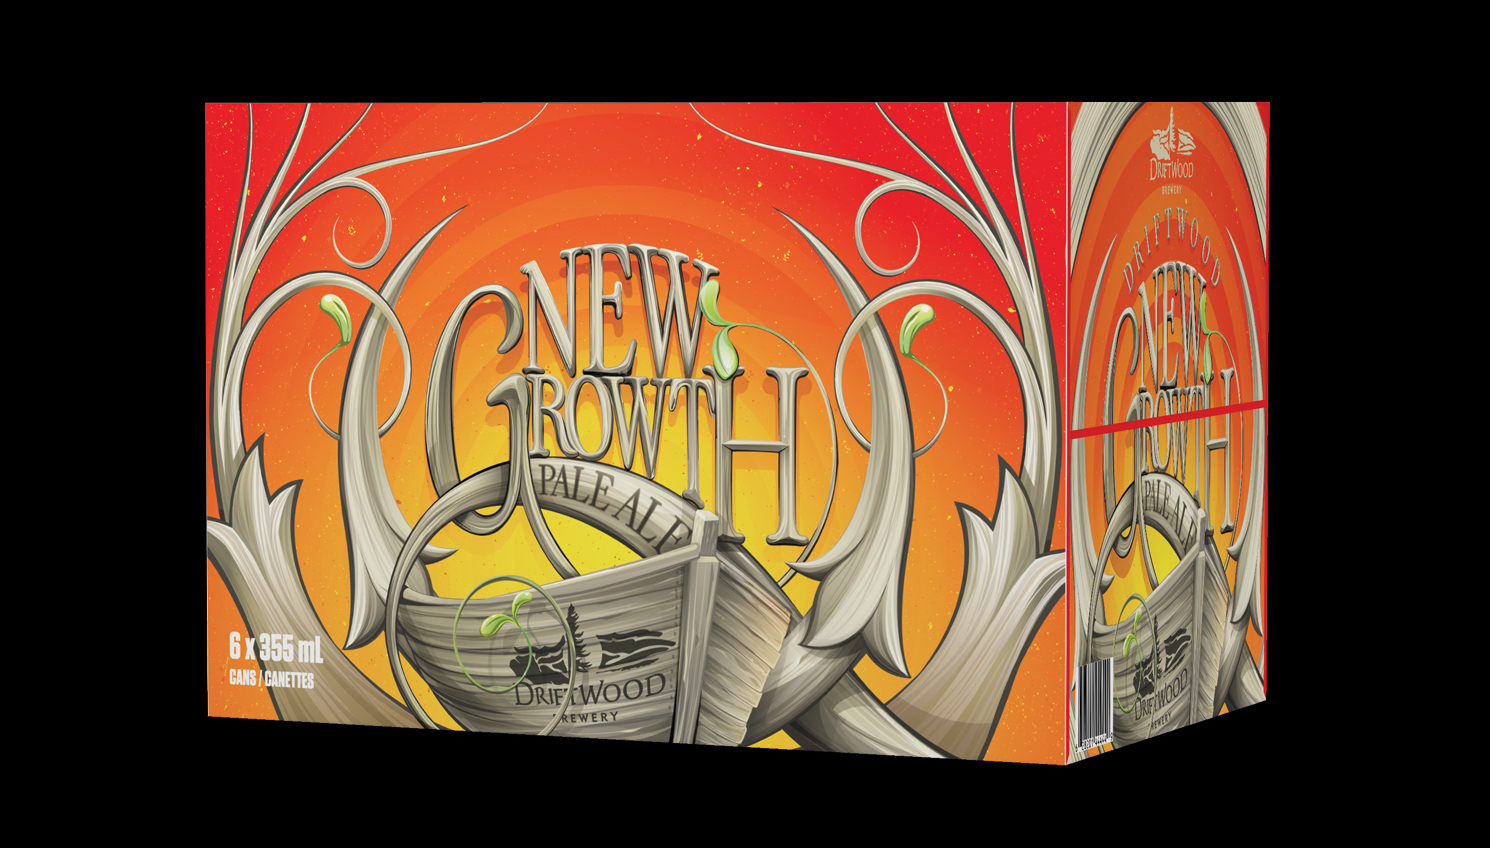 Box Design for Driftwood Brewery's New Growth Box